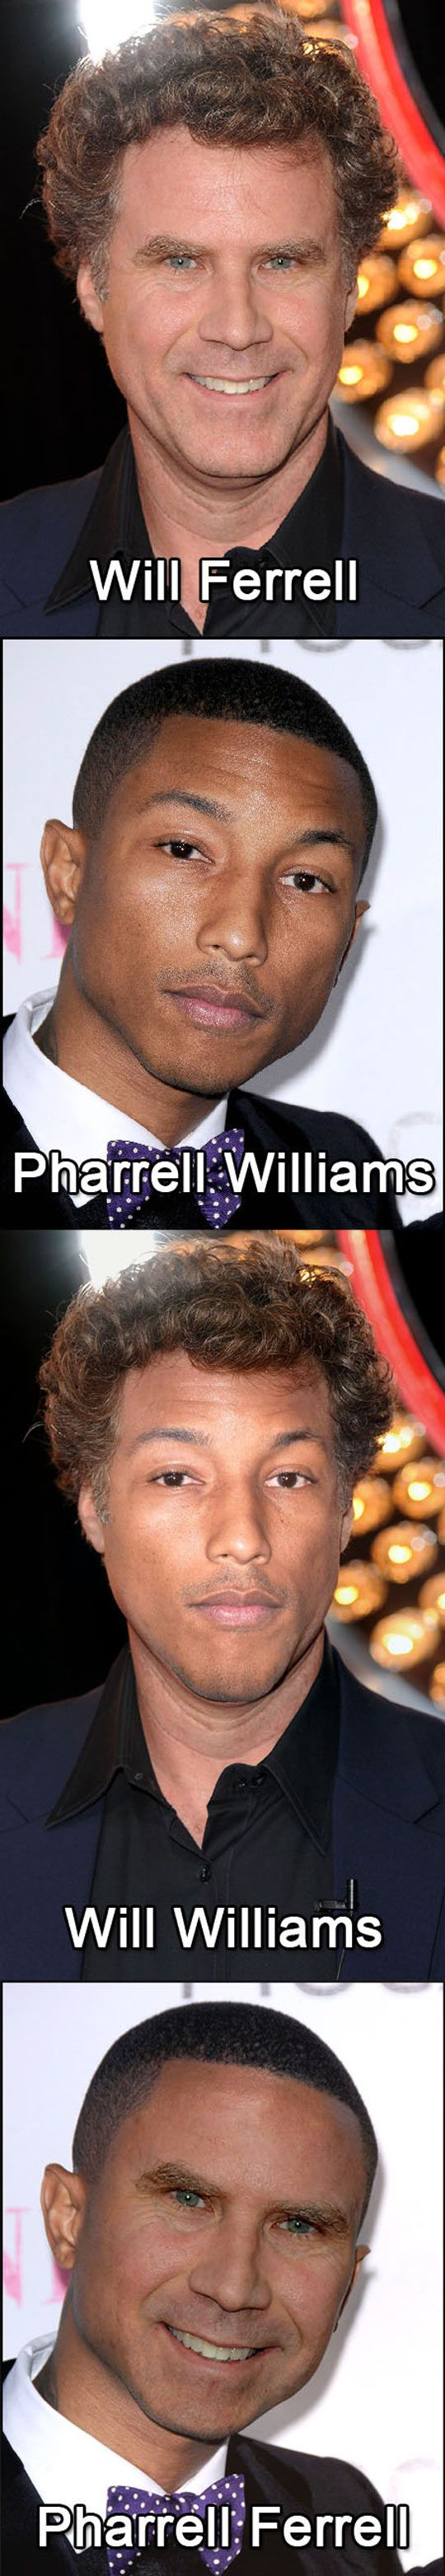 Which Ferrell Is Pharrell